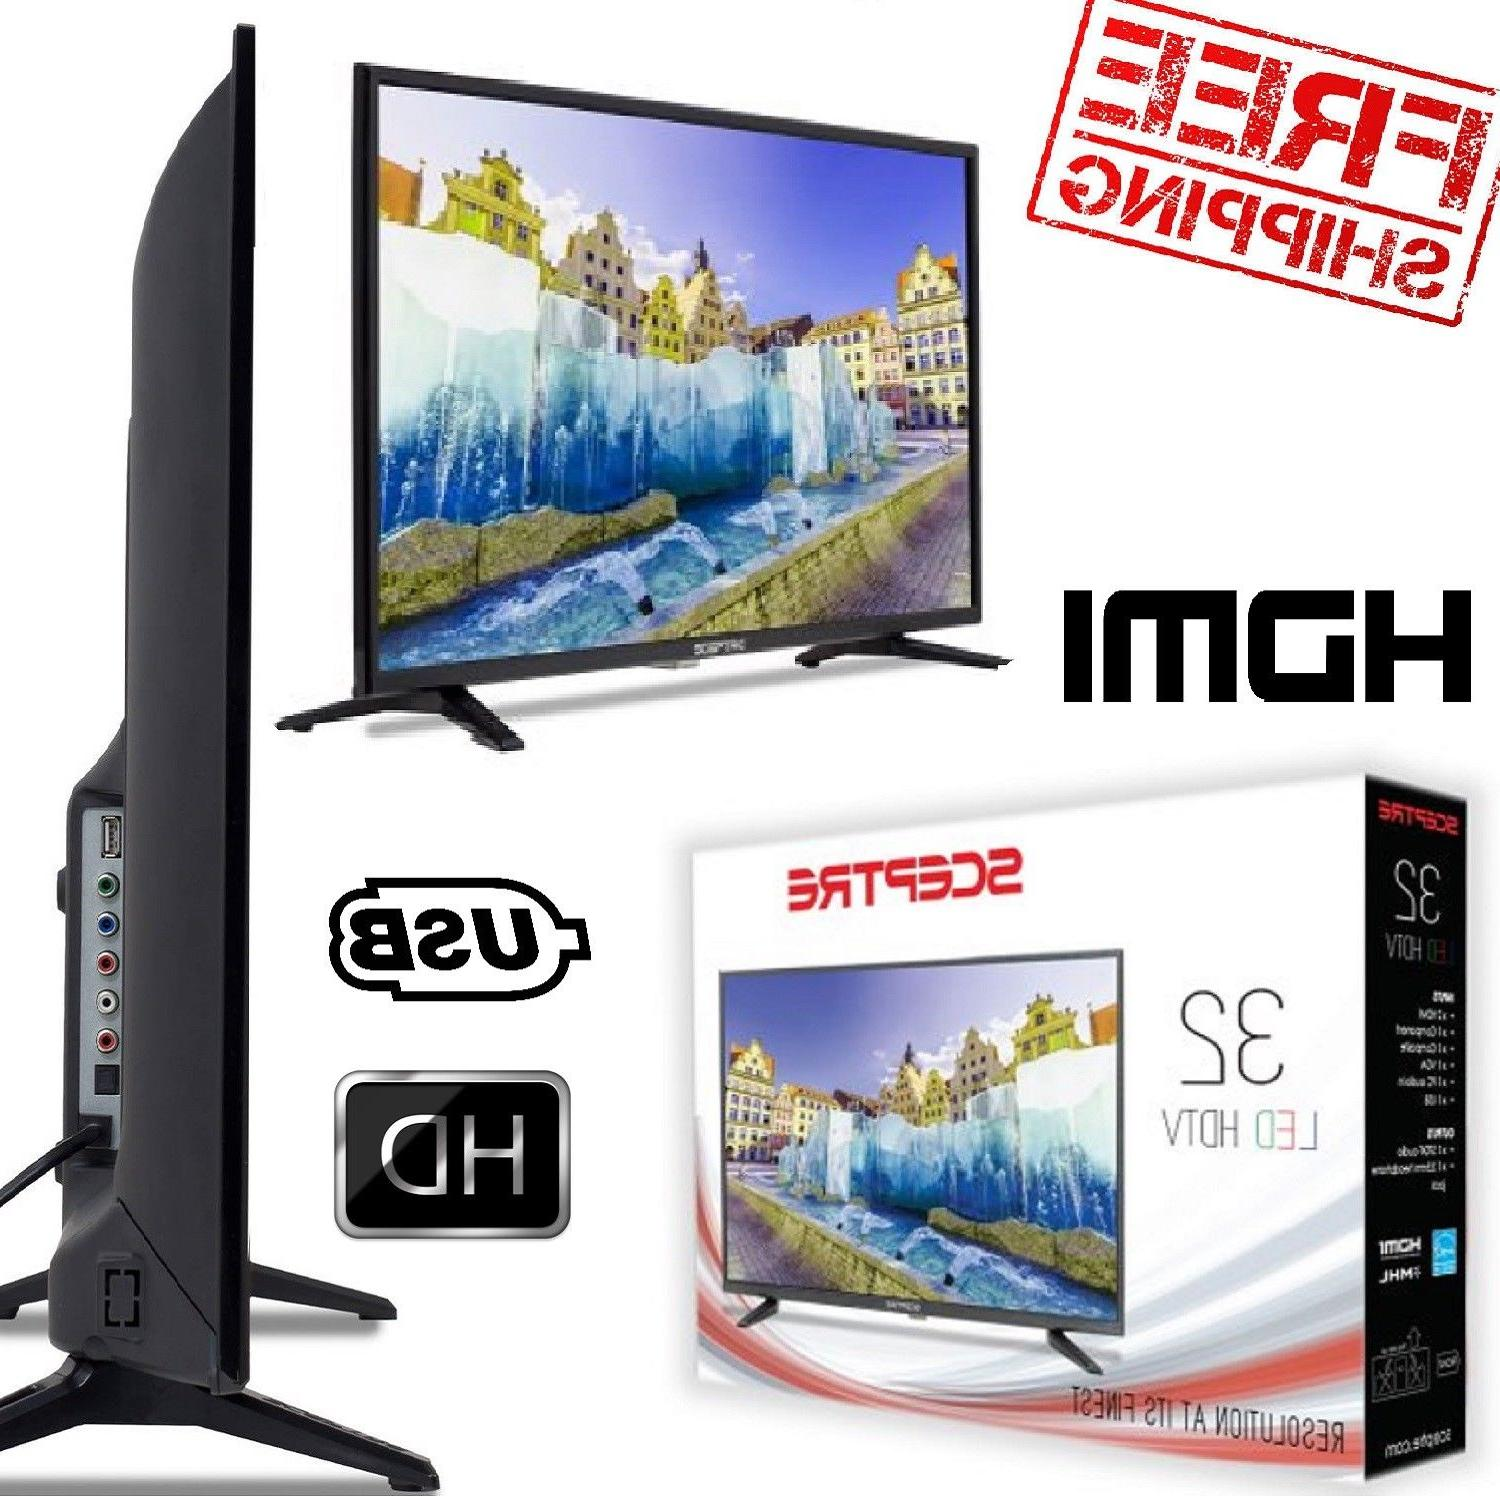 "LED TV 32"" HD Screen Thin Sceptre HDMI USB TV Home Mountable"